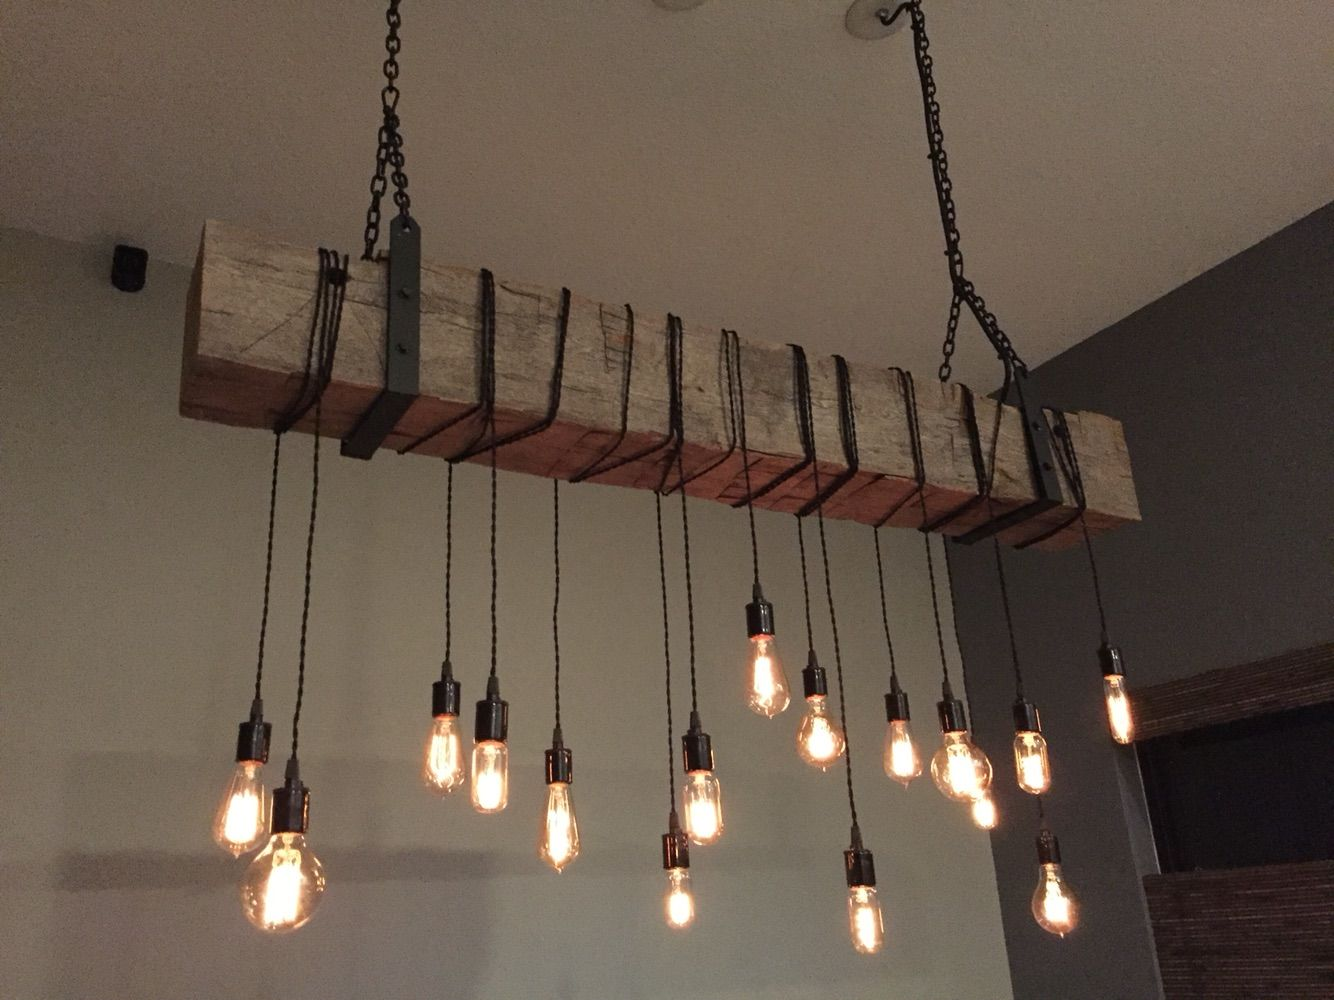 Custom made reclaimed barn beam chandelier light fixture modern industrial rustic restaurant bar